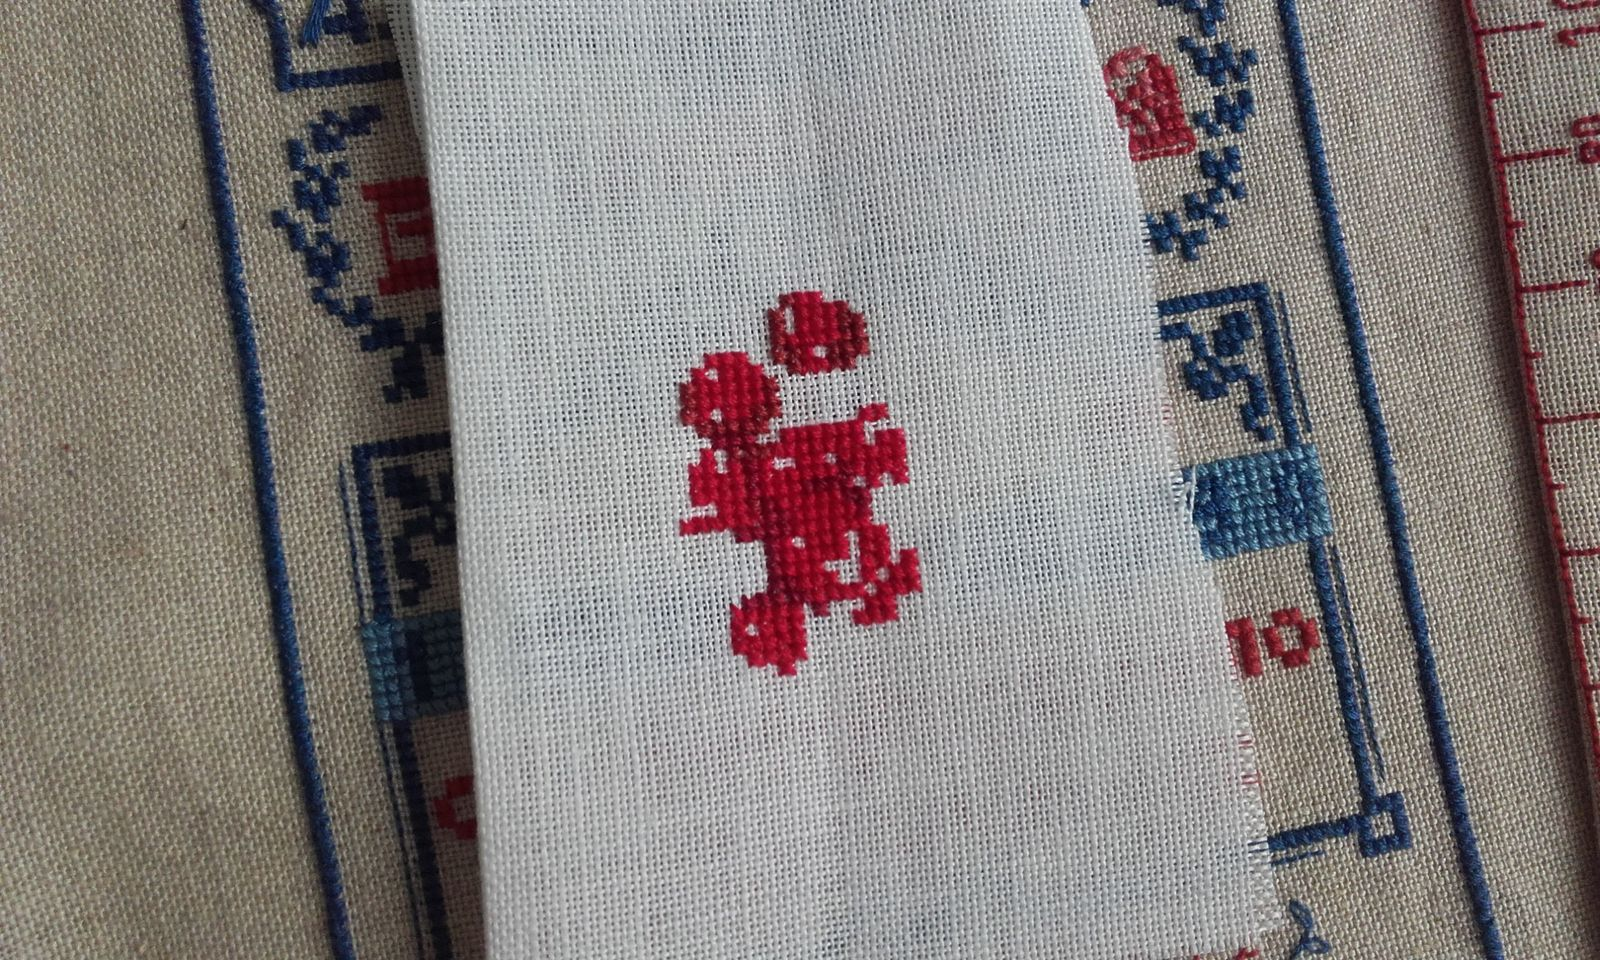 Broderie rouge en cours